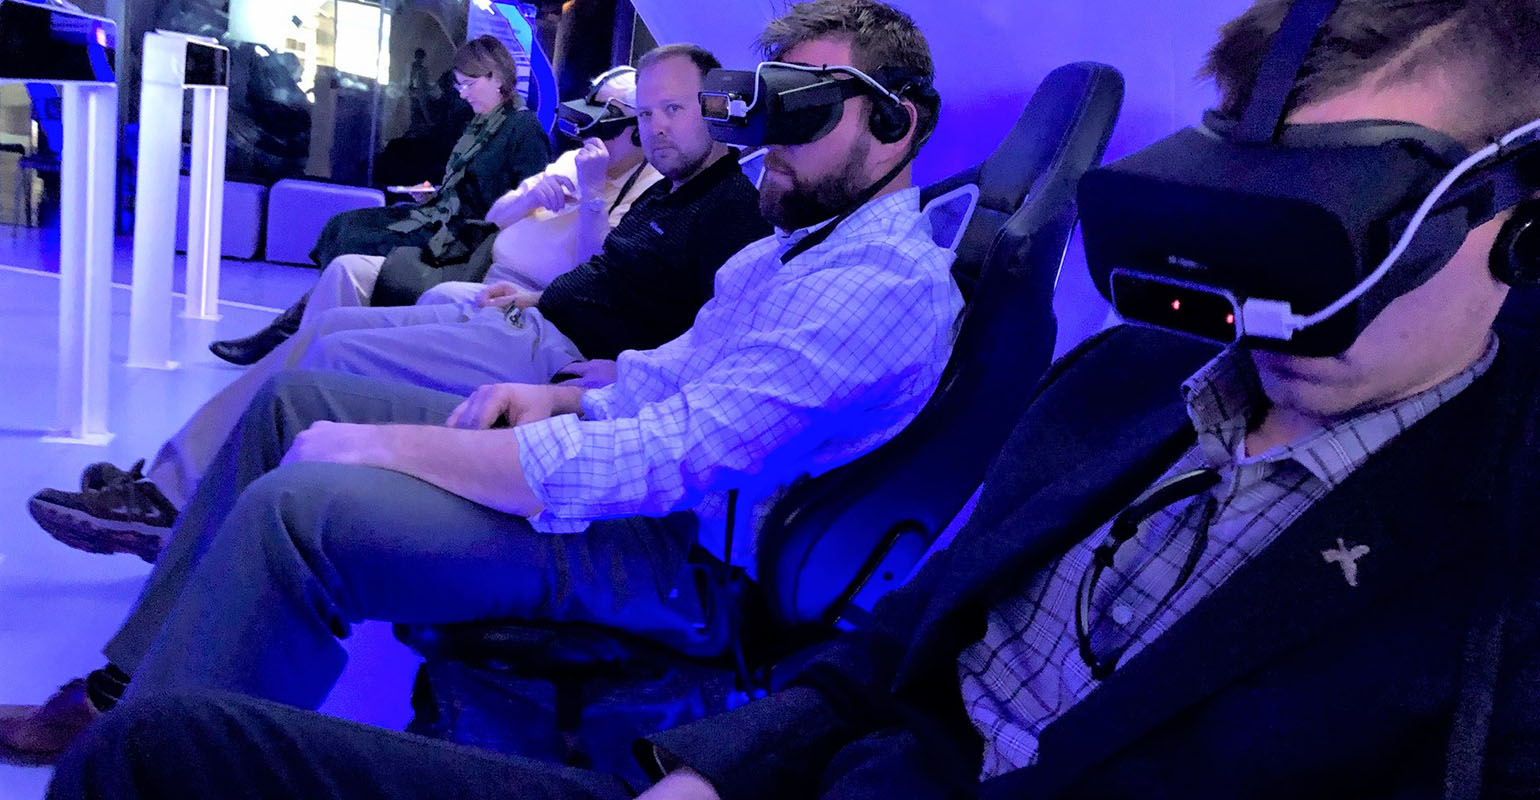 IALP Class of 2020 members utilize a simulator to examine technological advances for the future at the Peres Center for Peace and Innovation in Tel Aviv.